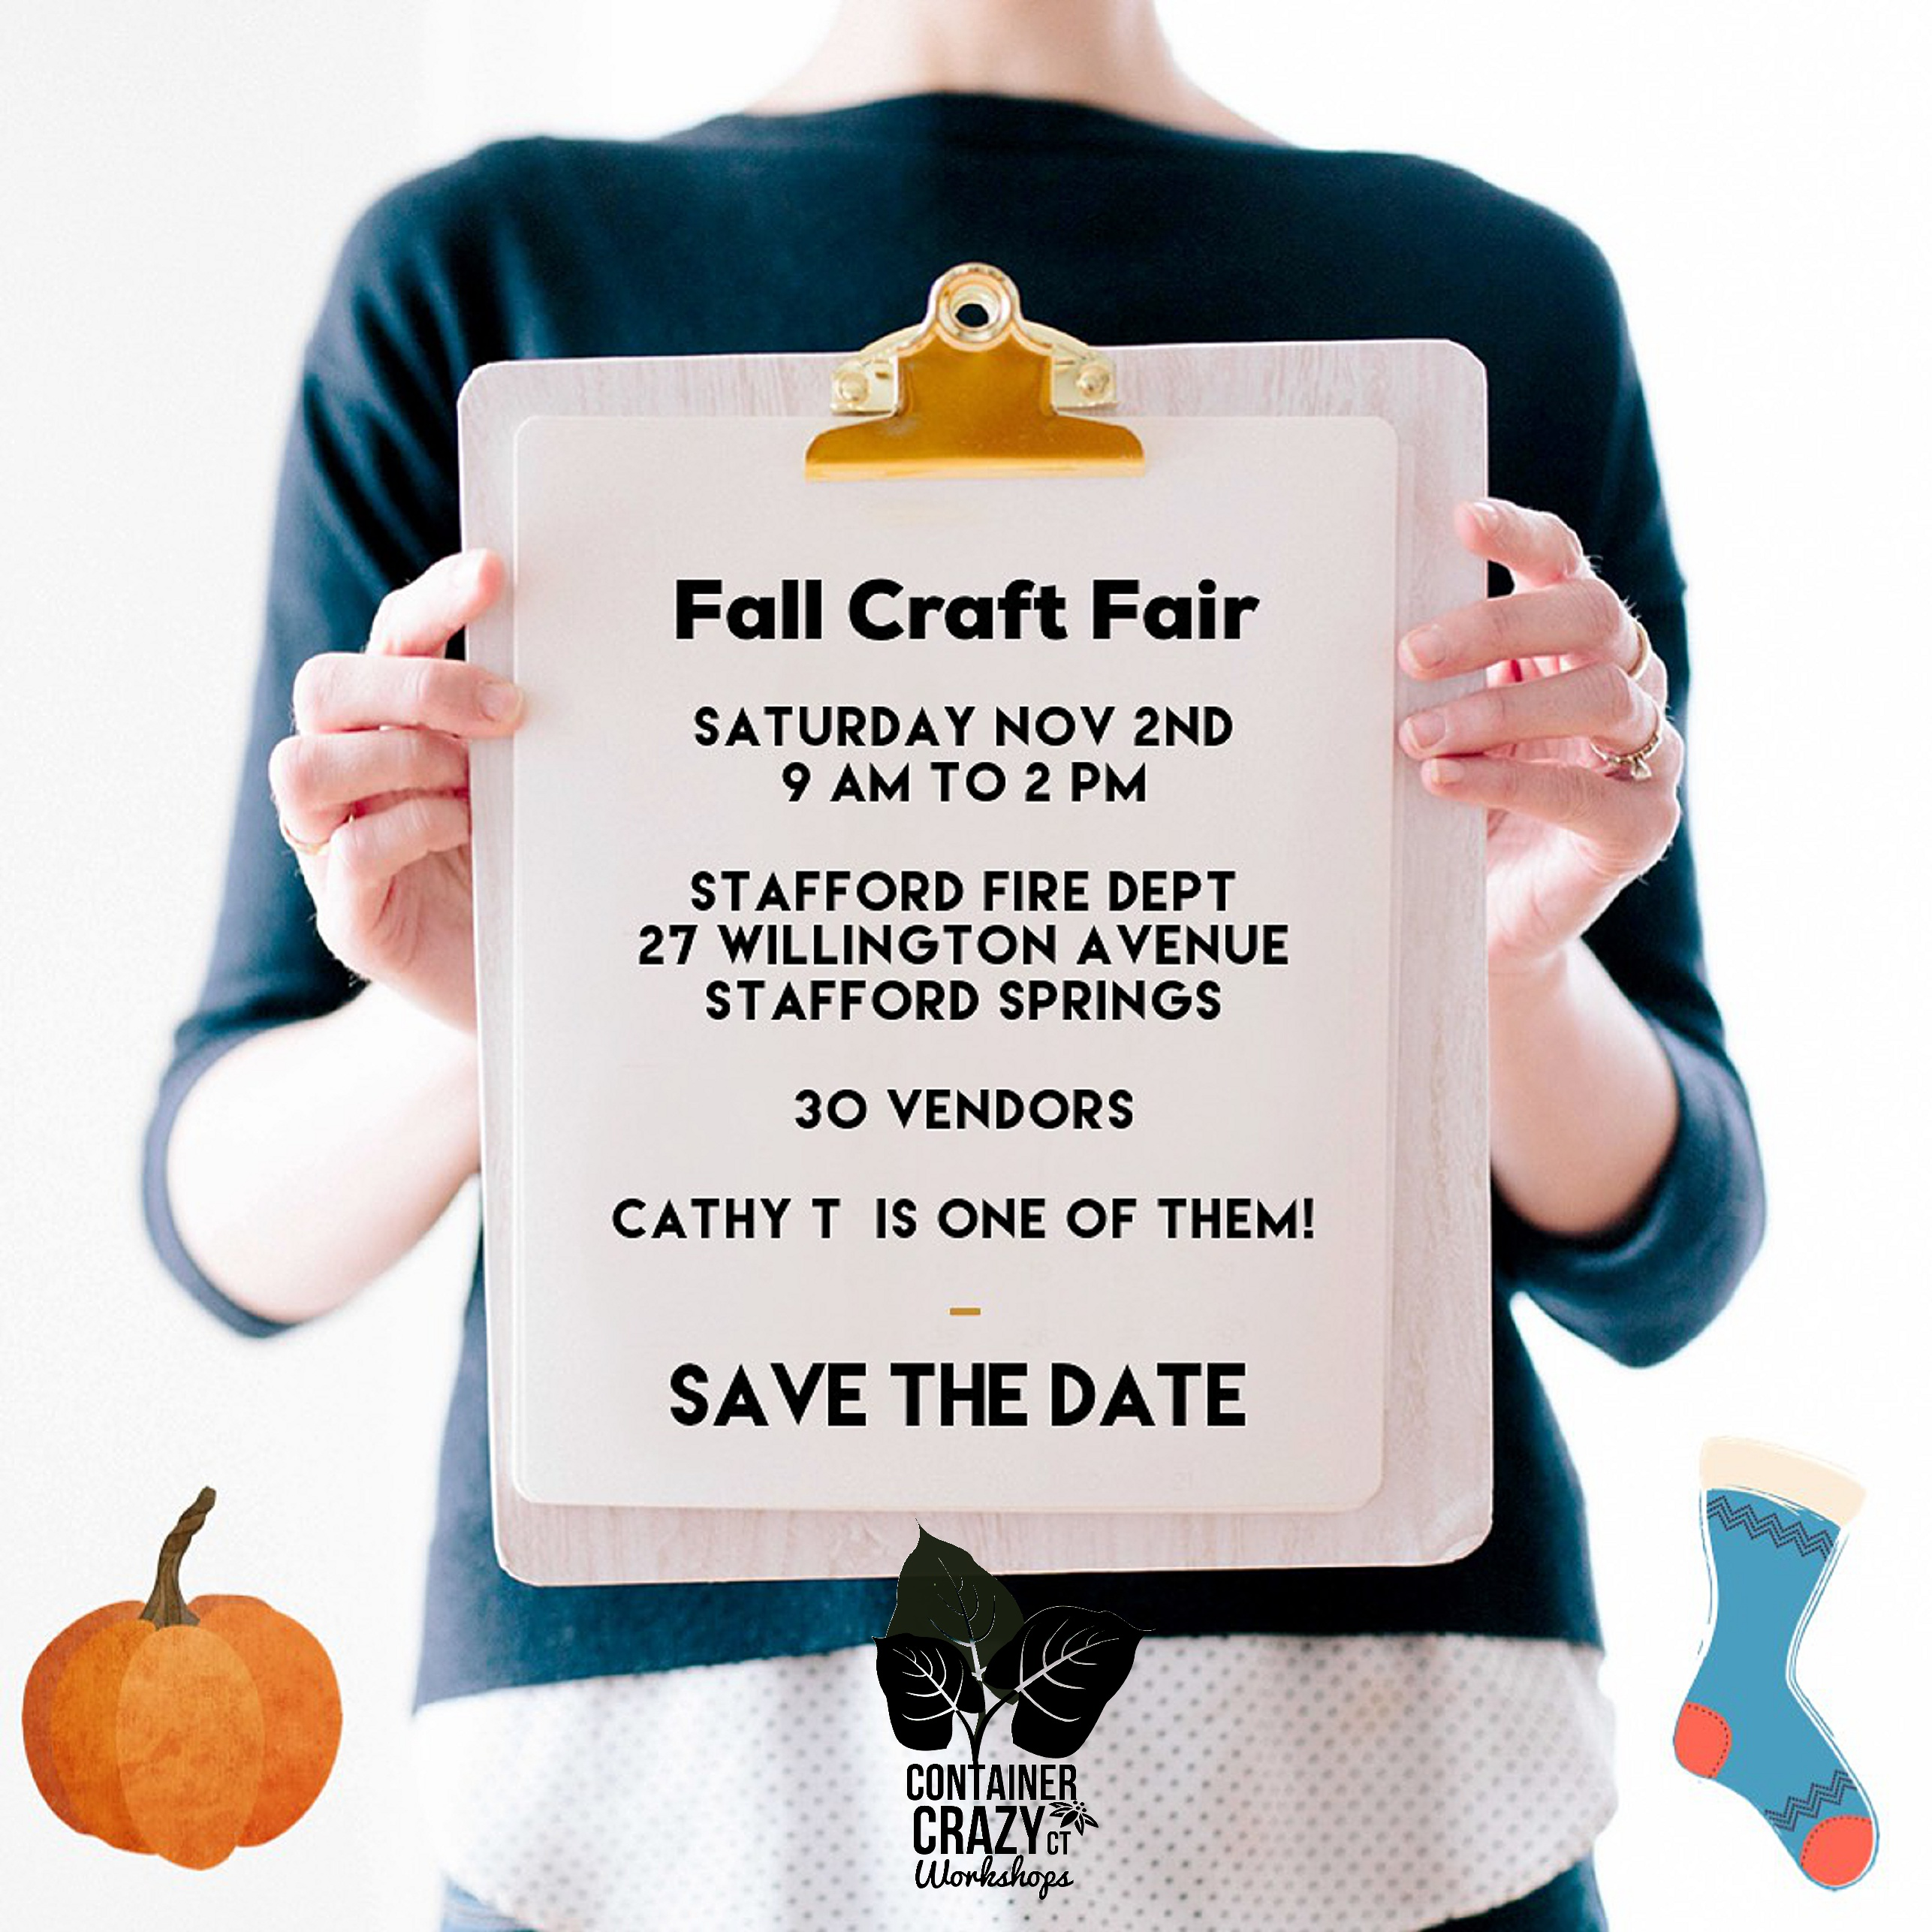 Fall Craft Fair 2019 by C Testa Copywrite_0001